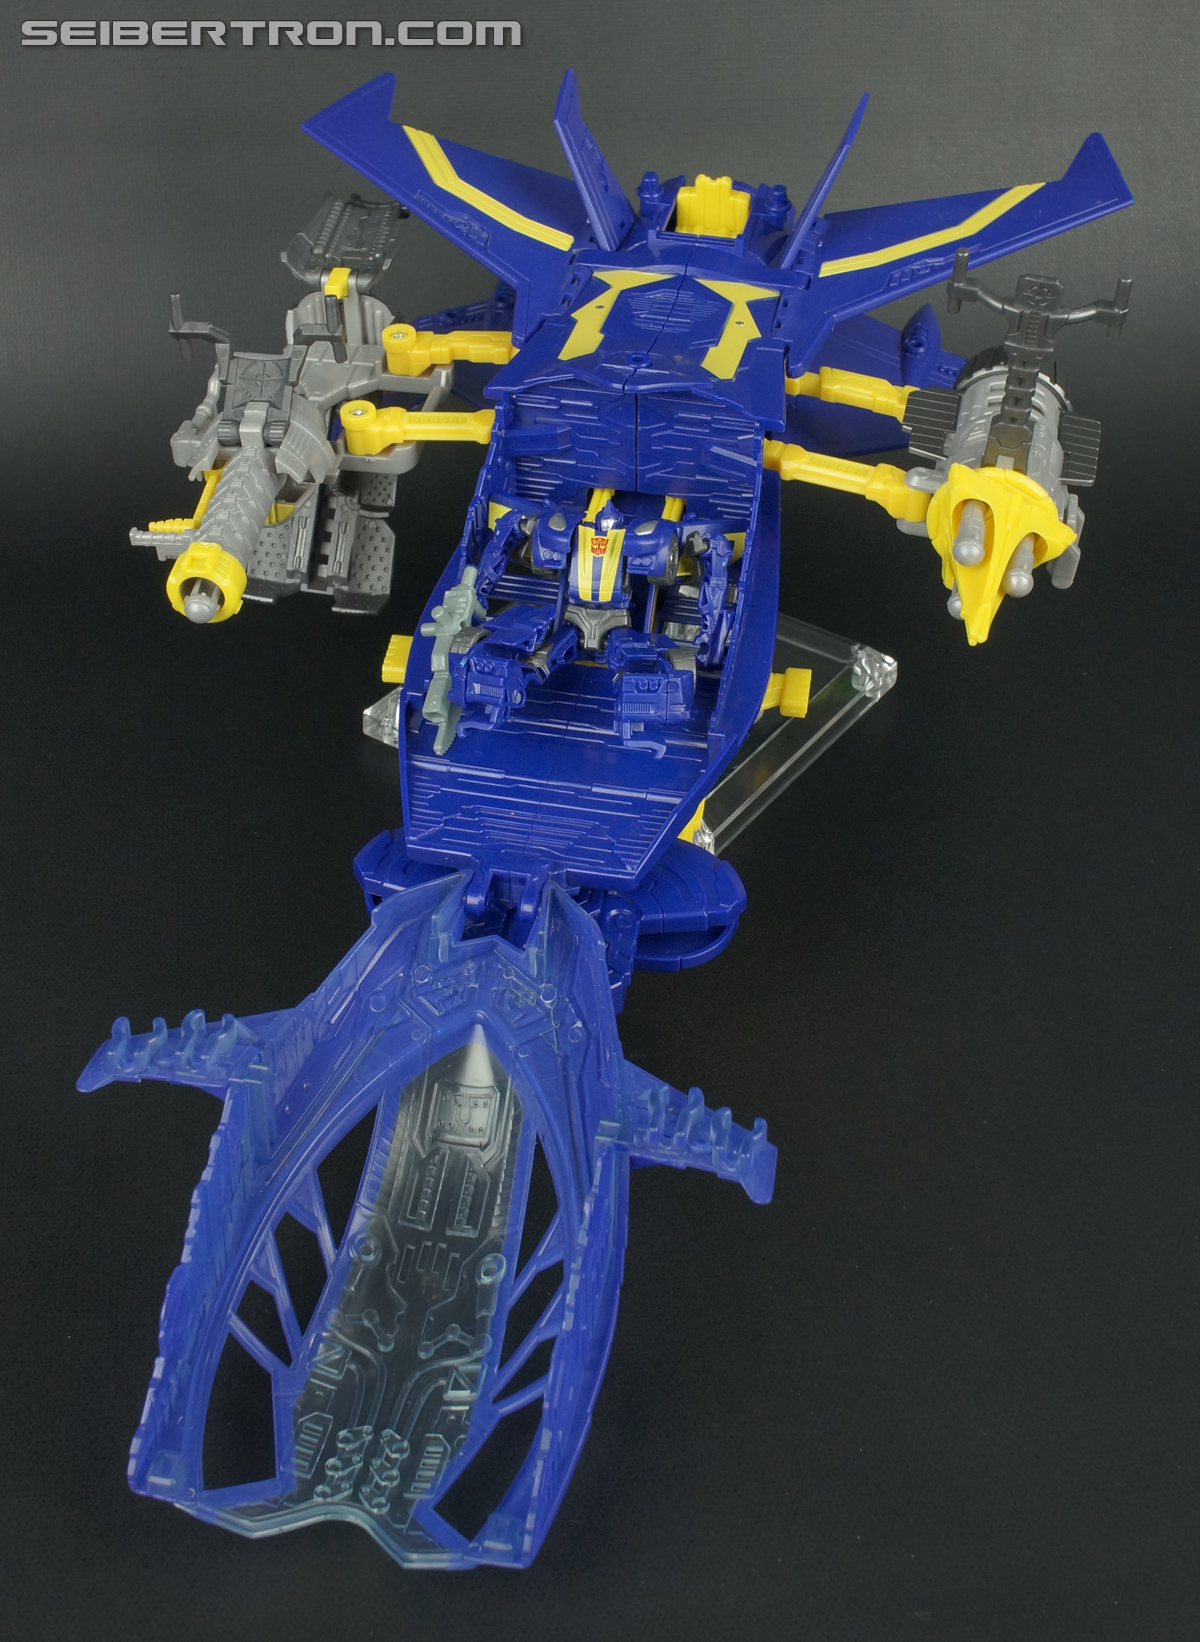 Transformers Prime Beast Hunters Cyberverse Sky Claw (Image #59 of 83)